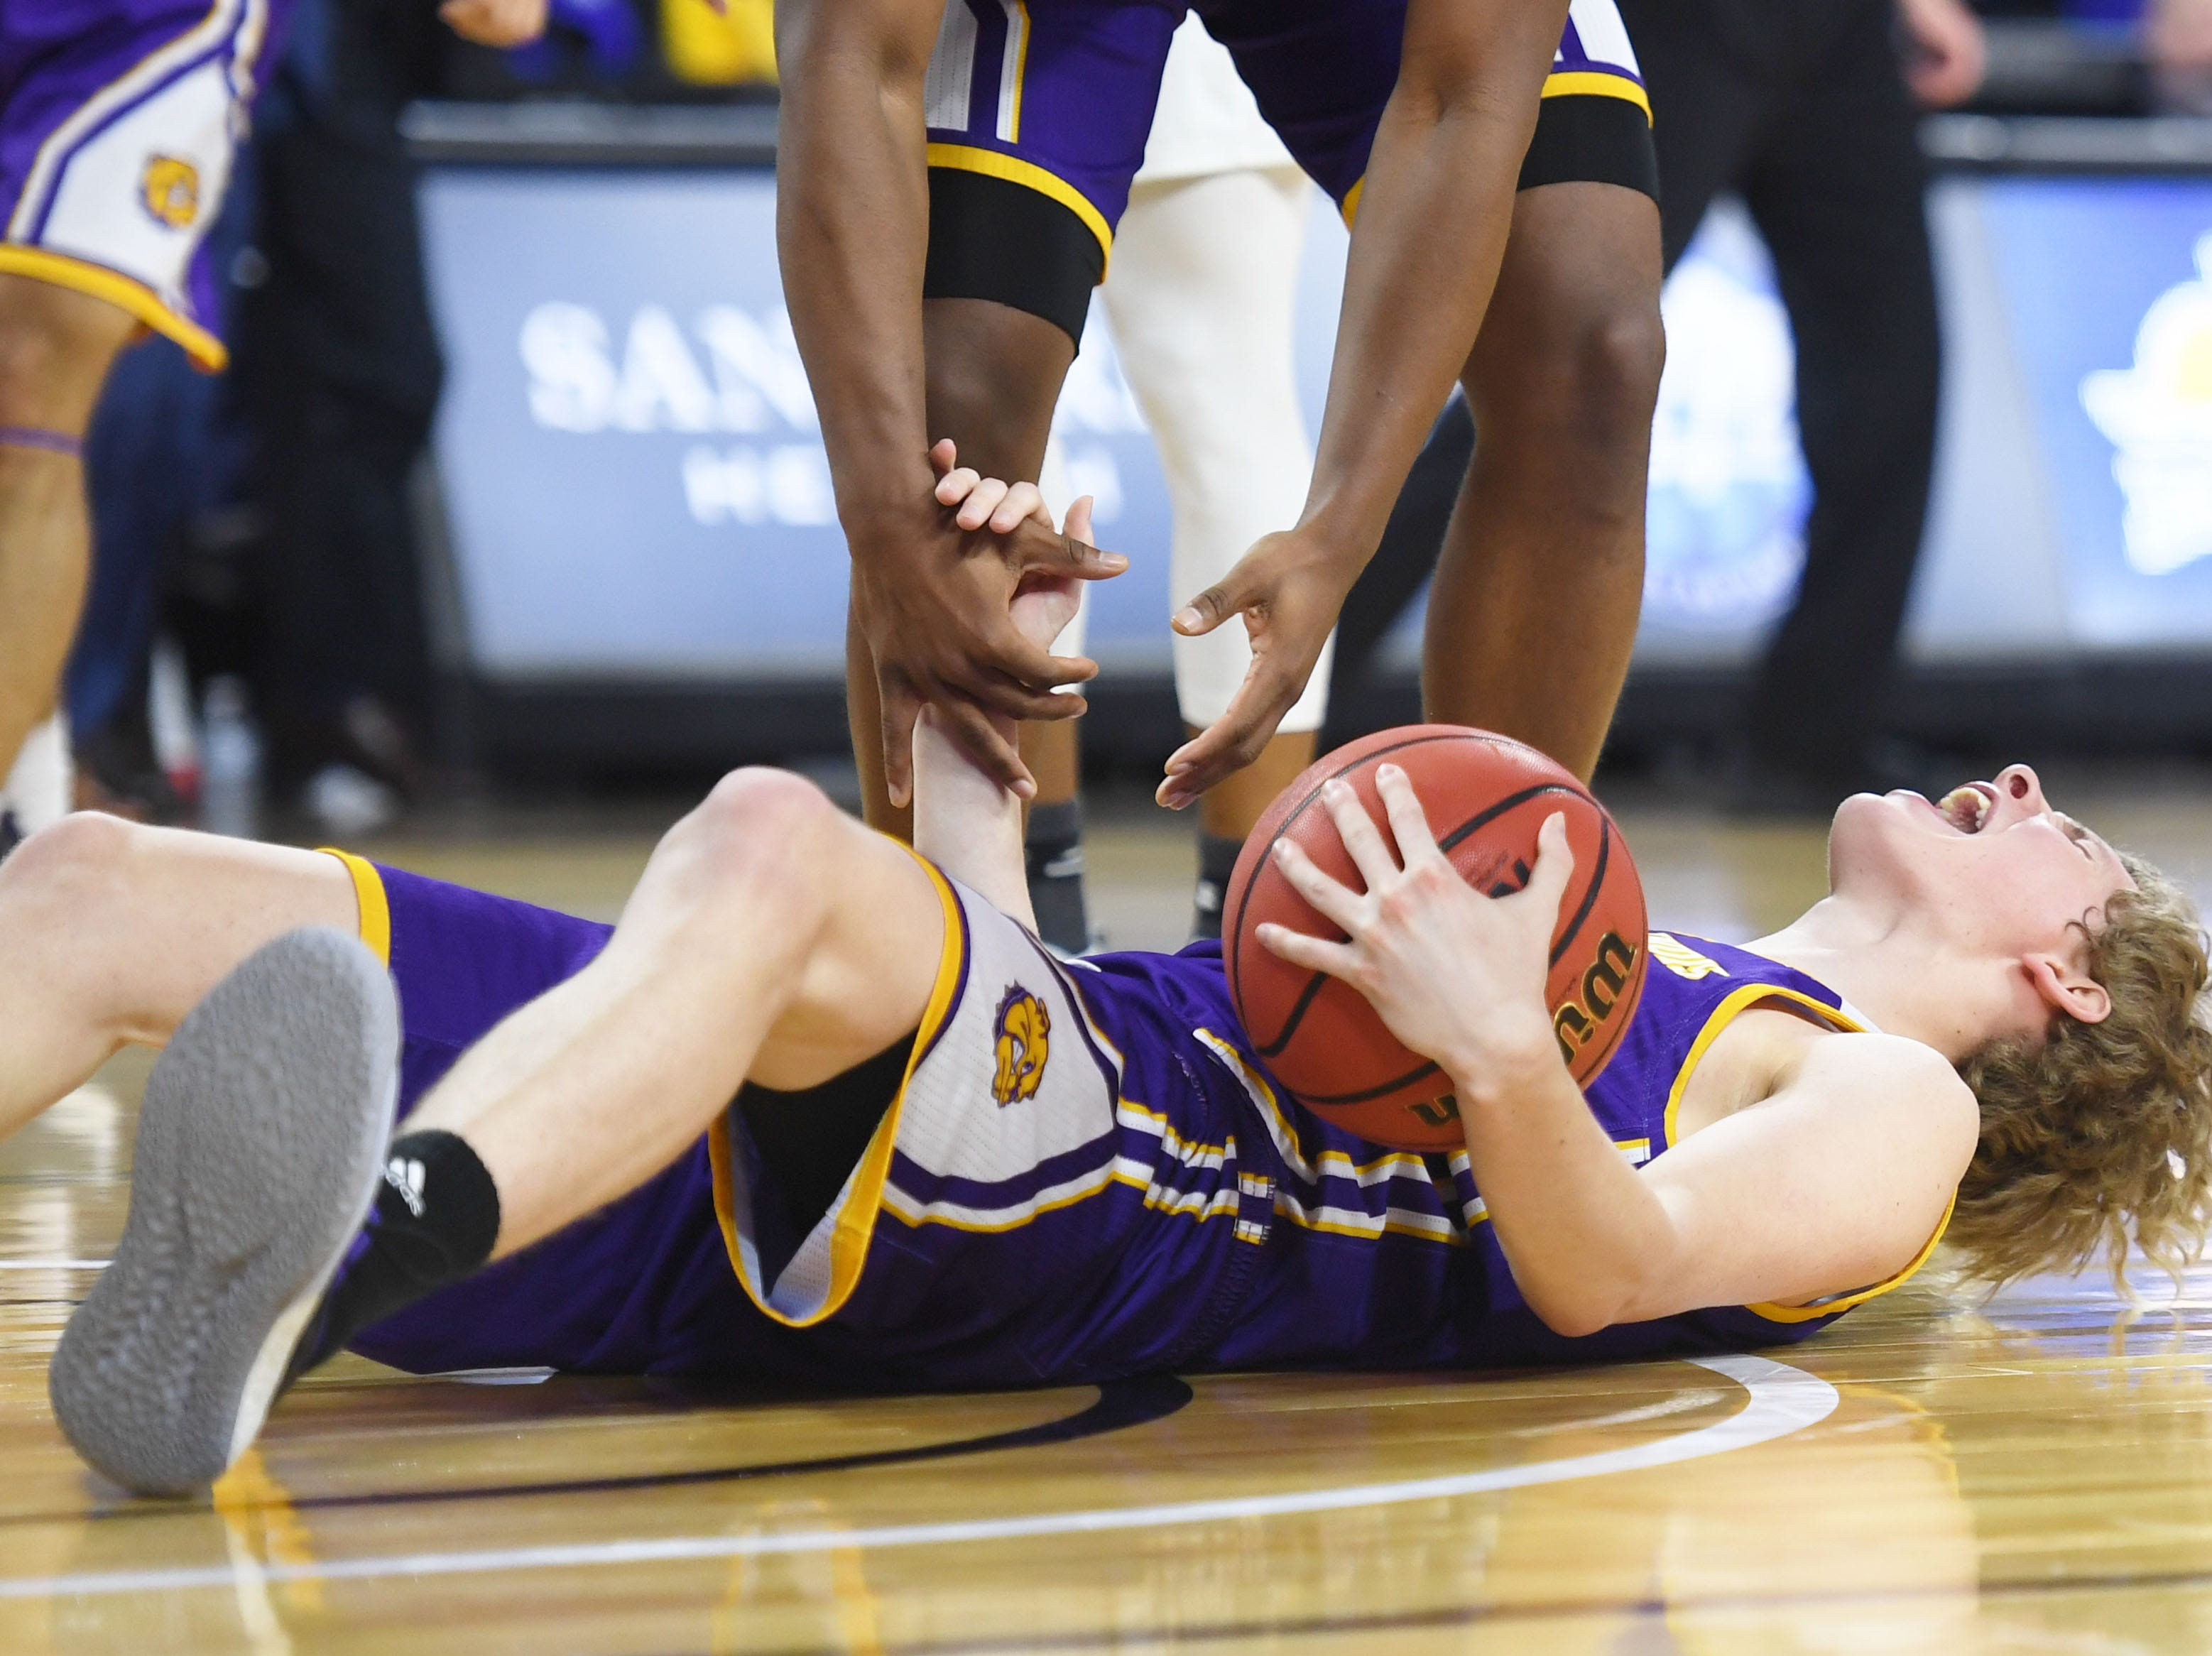 Western Illinois' Ben Pyle lets out a yell after falling down during the game against SDSU Saturday, March 9, in the Summit League tournament at the Denny Sanford Premier Center in Sioux Falls.